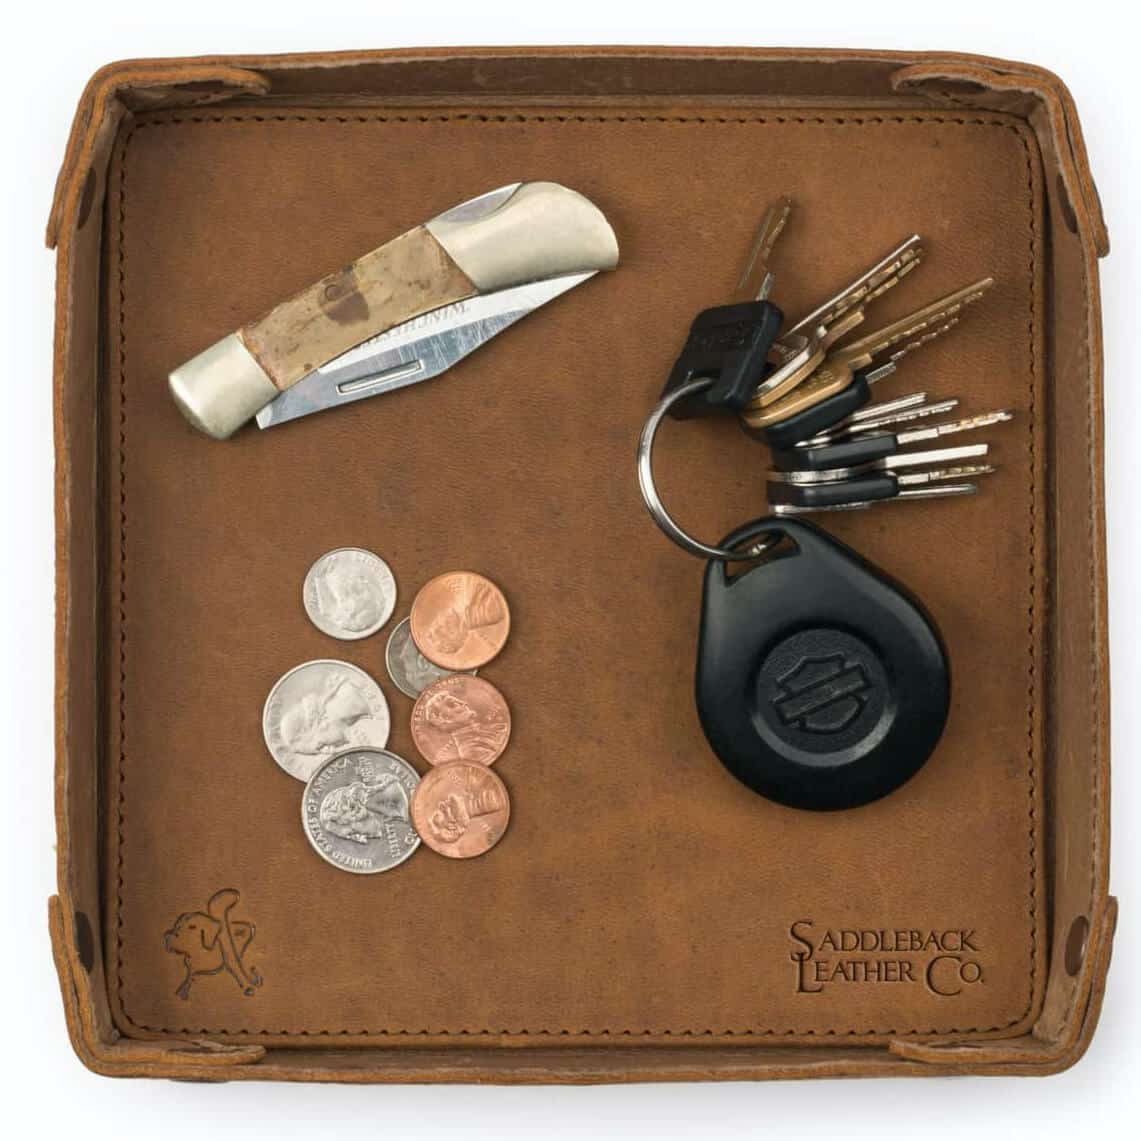 Saddleback Firm Leather Catchall